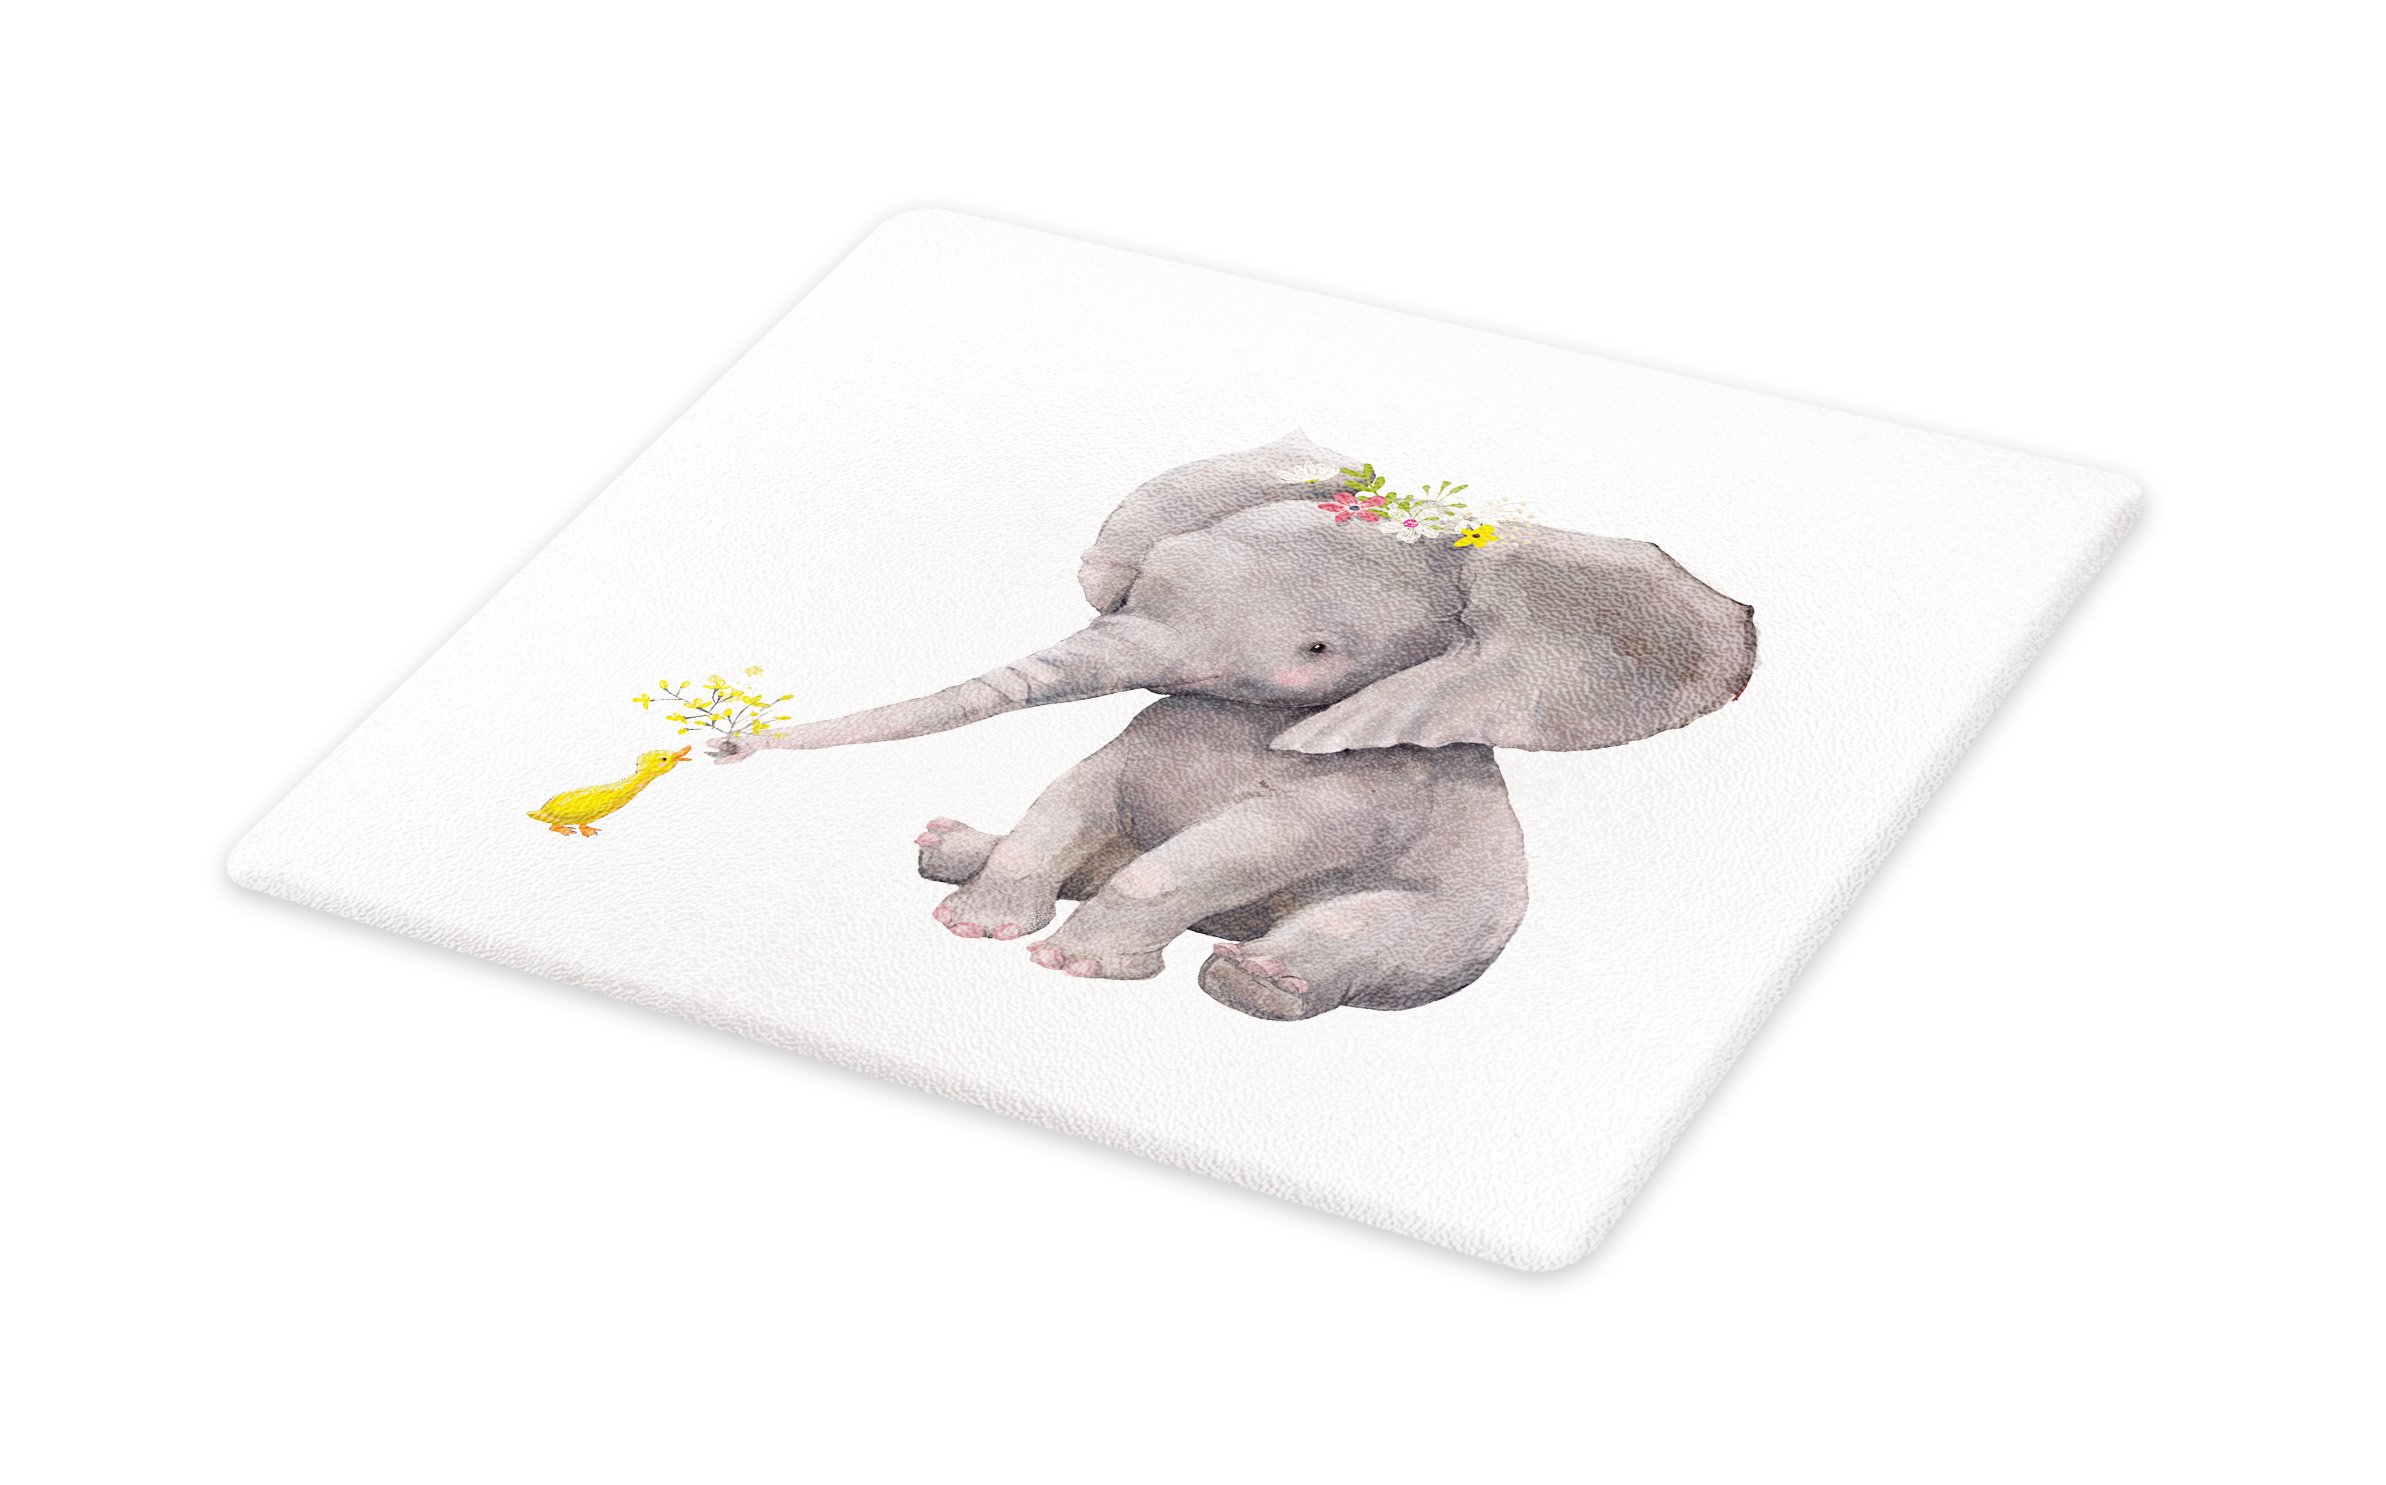 Lunarable Elephant Cutting Board, Cute Baby Elephant Giving Flowers to a Little Duck Watercolor Animal Illustration, Decorative Tempered Glass Cutting and Serving Board, Small Size, Multicolor